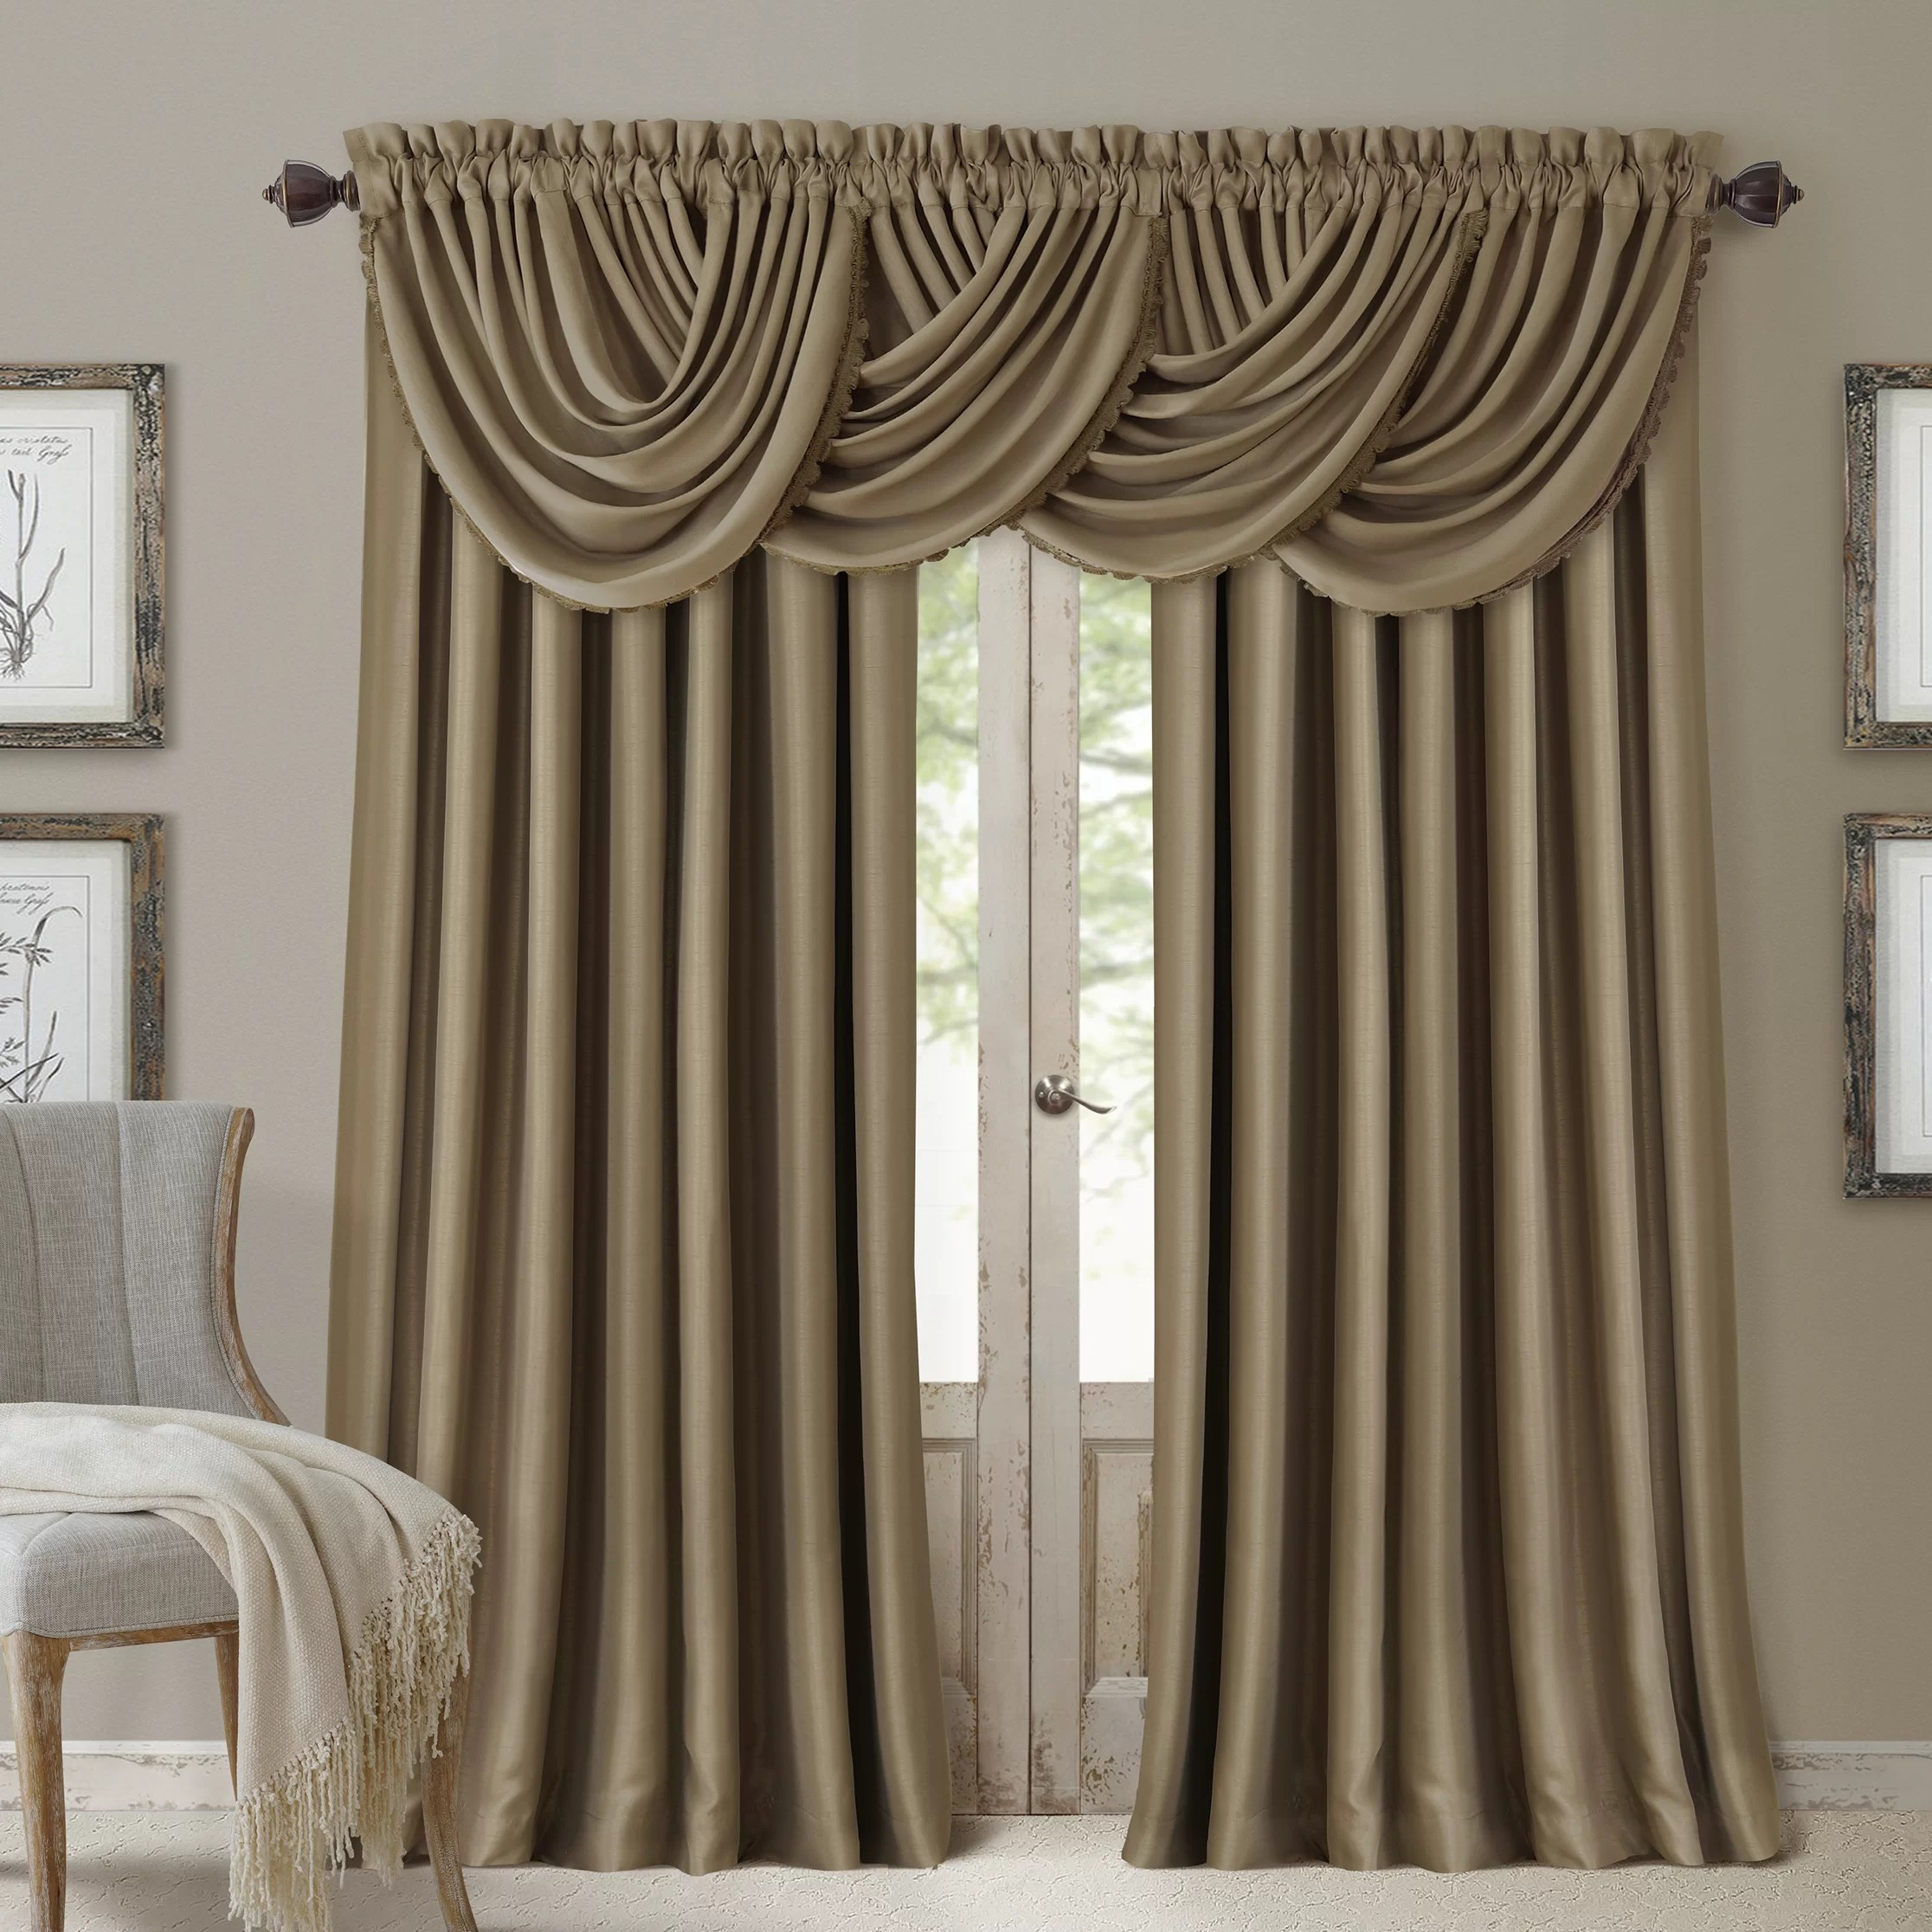 Window Coverings To Keep Heat Out Ardmore Solid Blackout Rod Pocket Single Curtain Panel